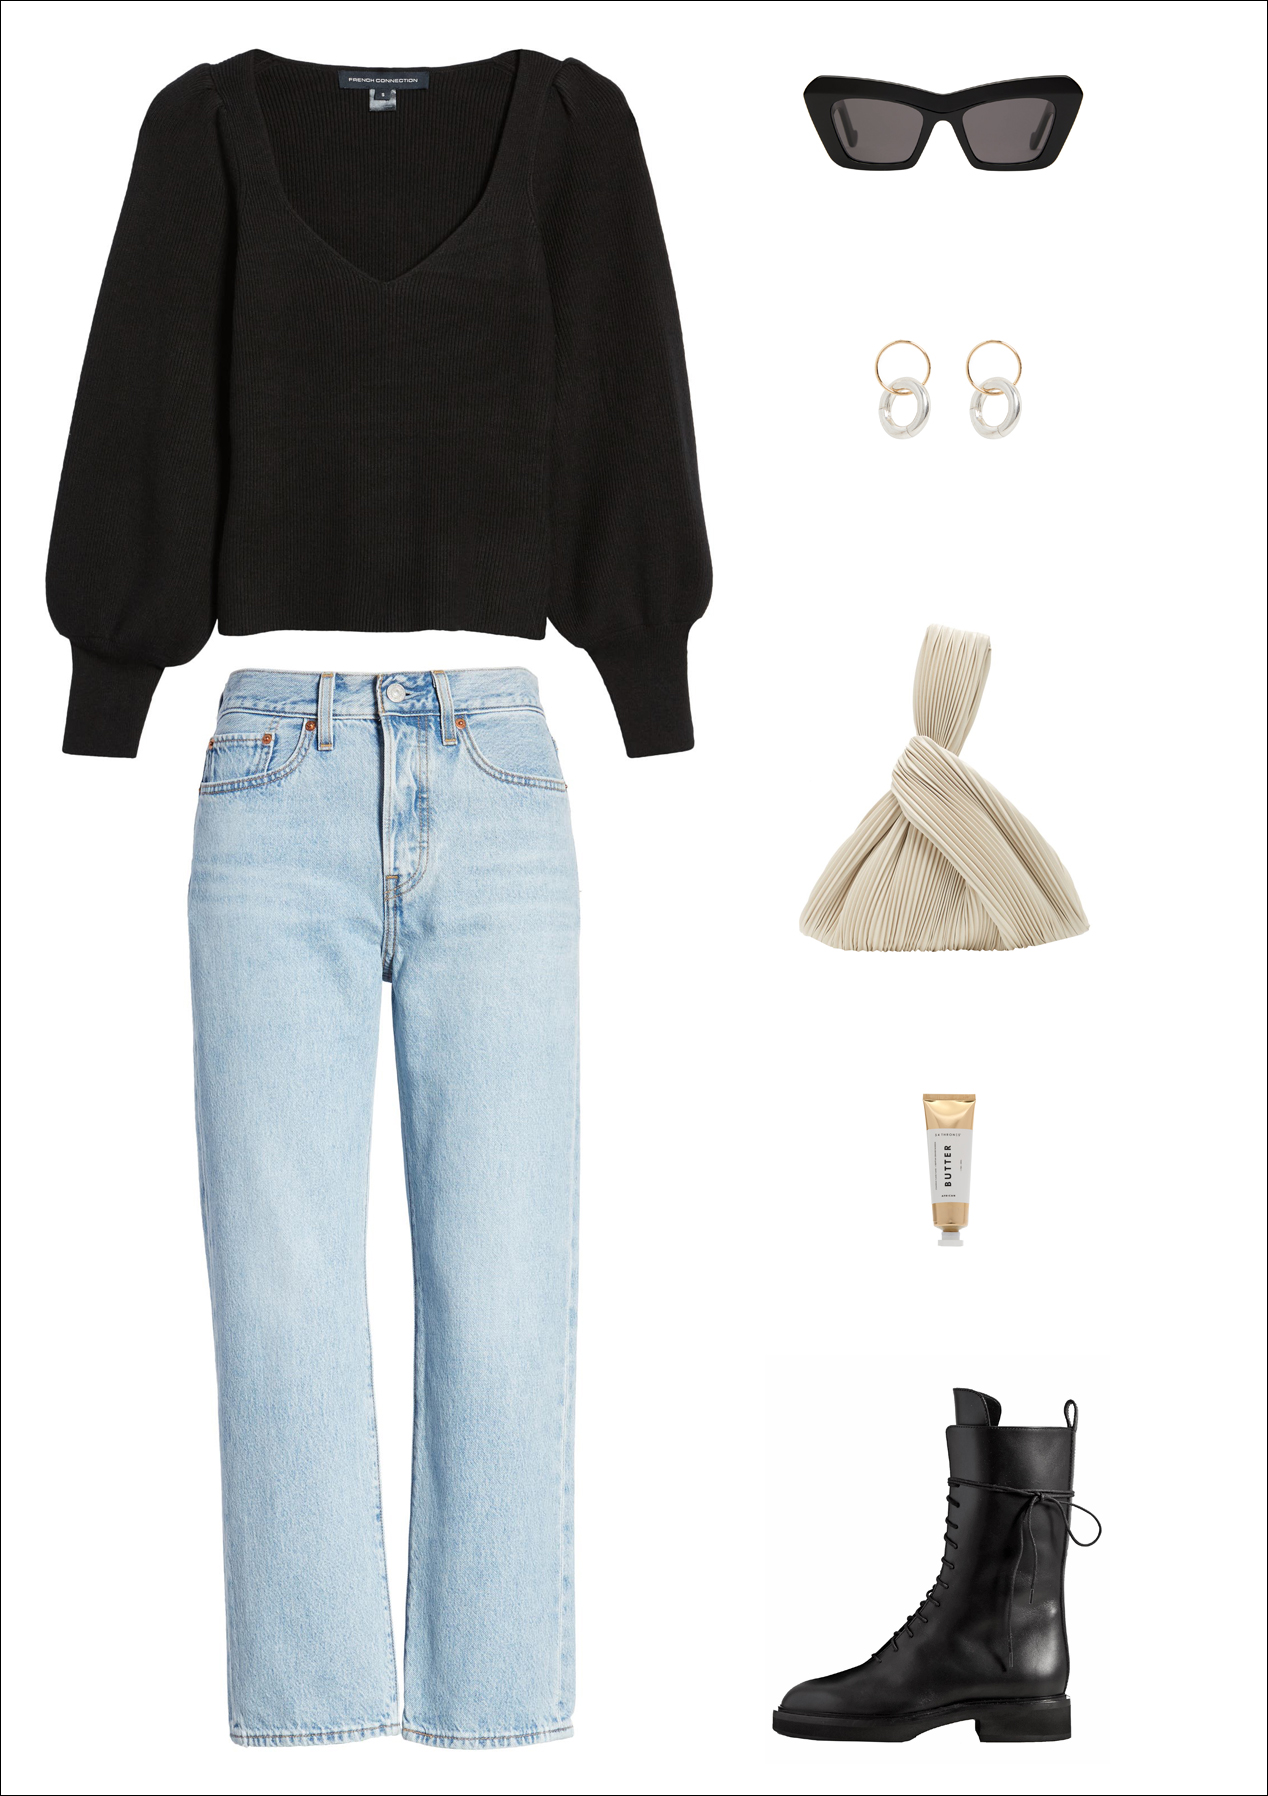 Stylish Fall Outfit Idea — French Connection balloon-sleeve sweater, Loewe cat-eye sunglasses, Kozakh statement hoop earrings, Nnaushka top-handle bag, Levi's straight-leg jeans, and Khaite black lace-up combat boots